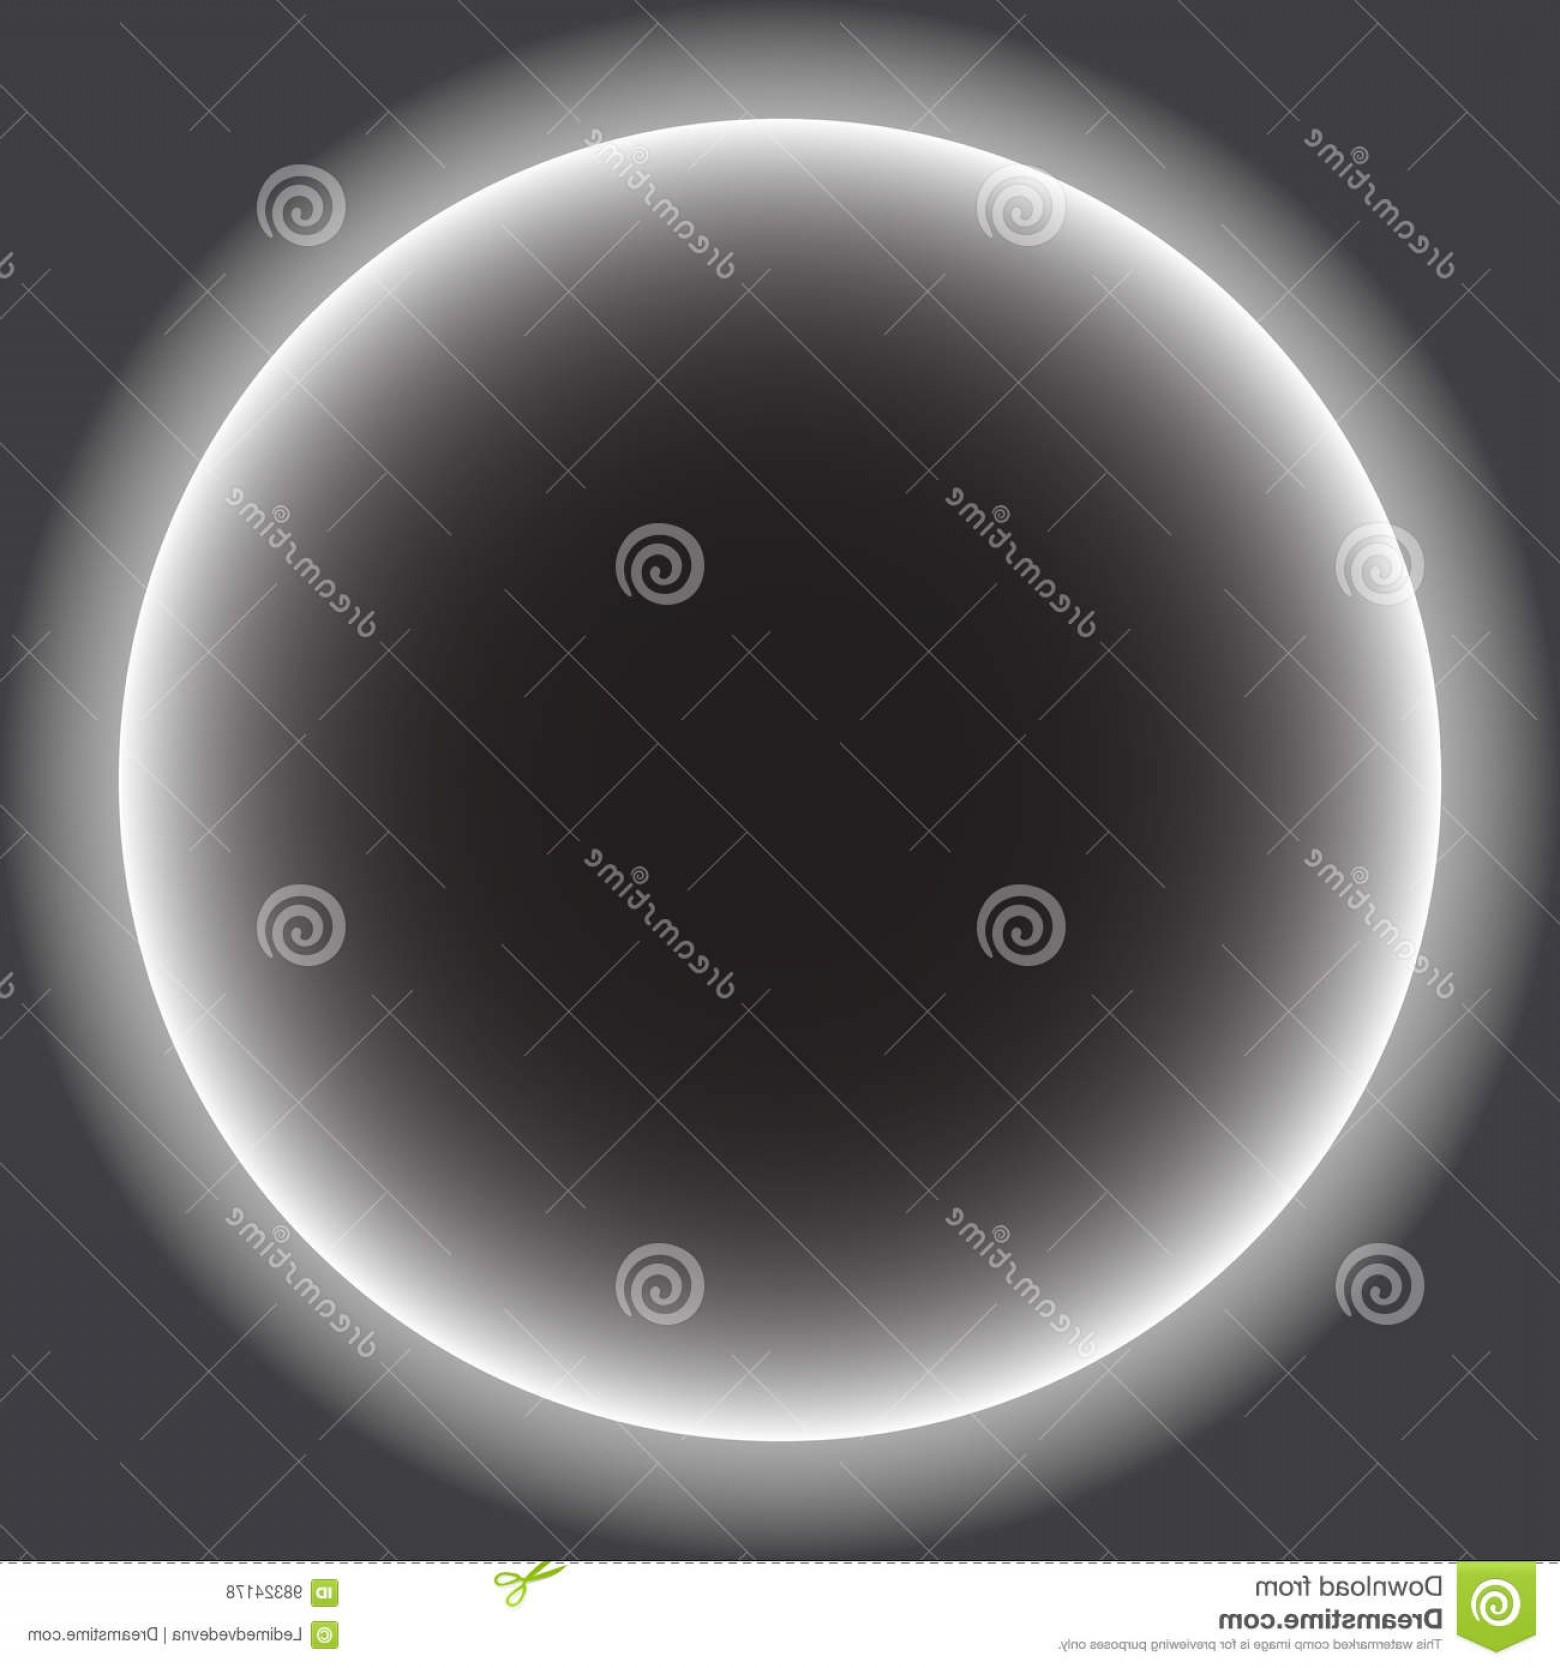 Whitew Eclipse Vector: Stock Illustration Gray Circle White Halo Solar Eclipse Vector Illustration Image